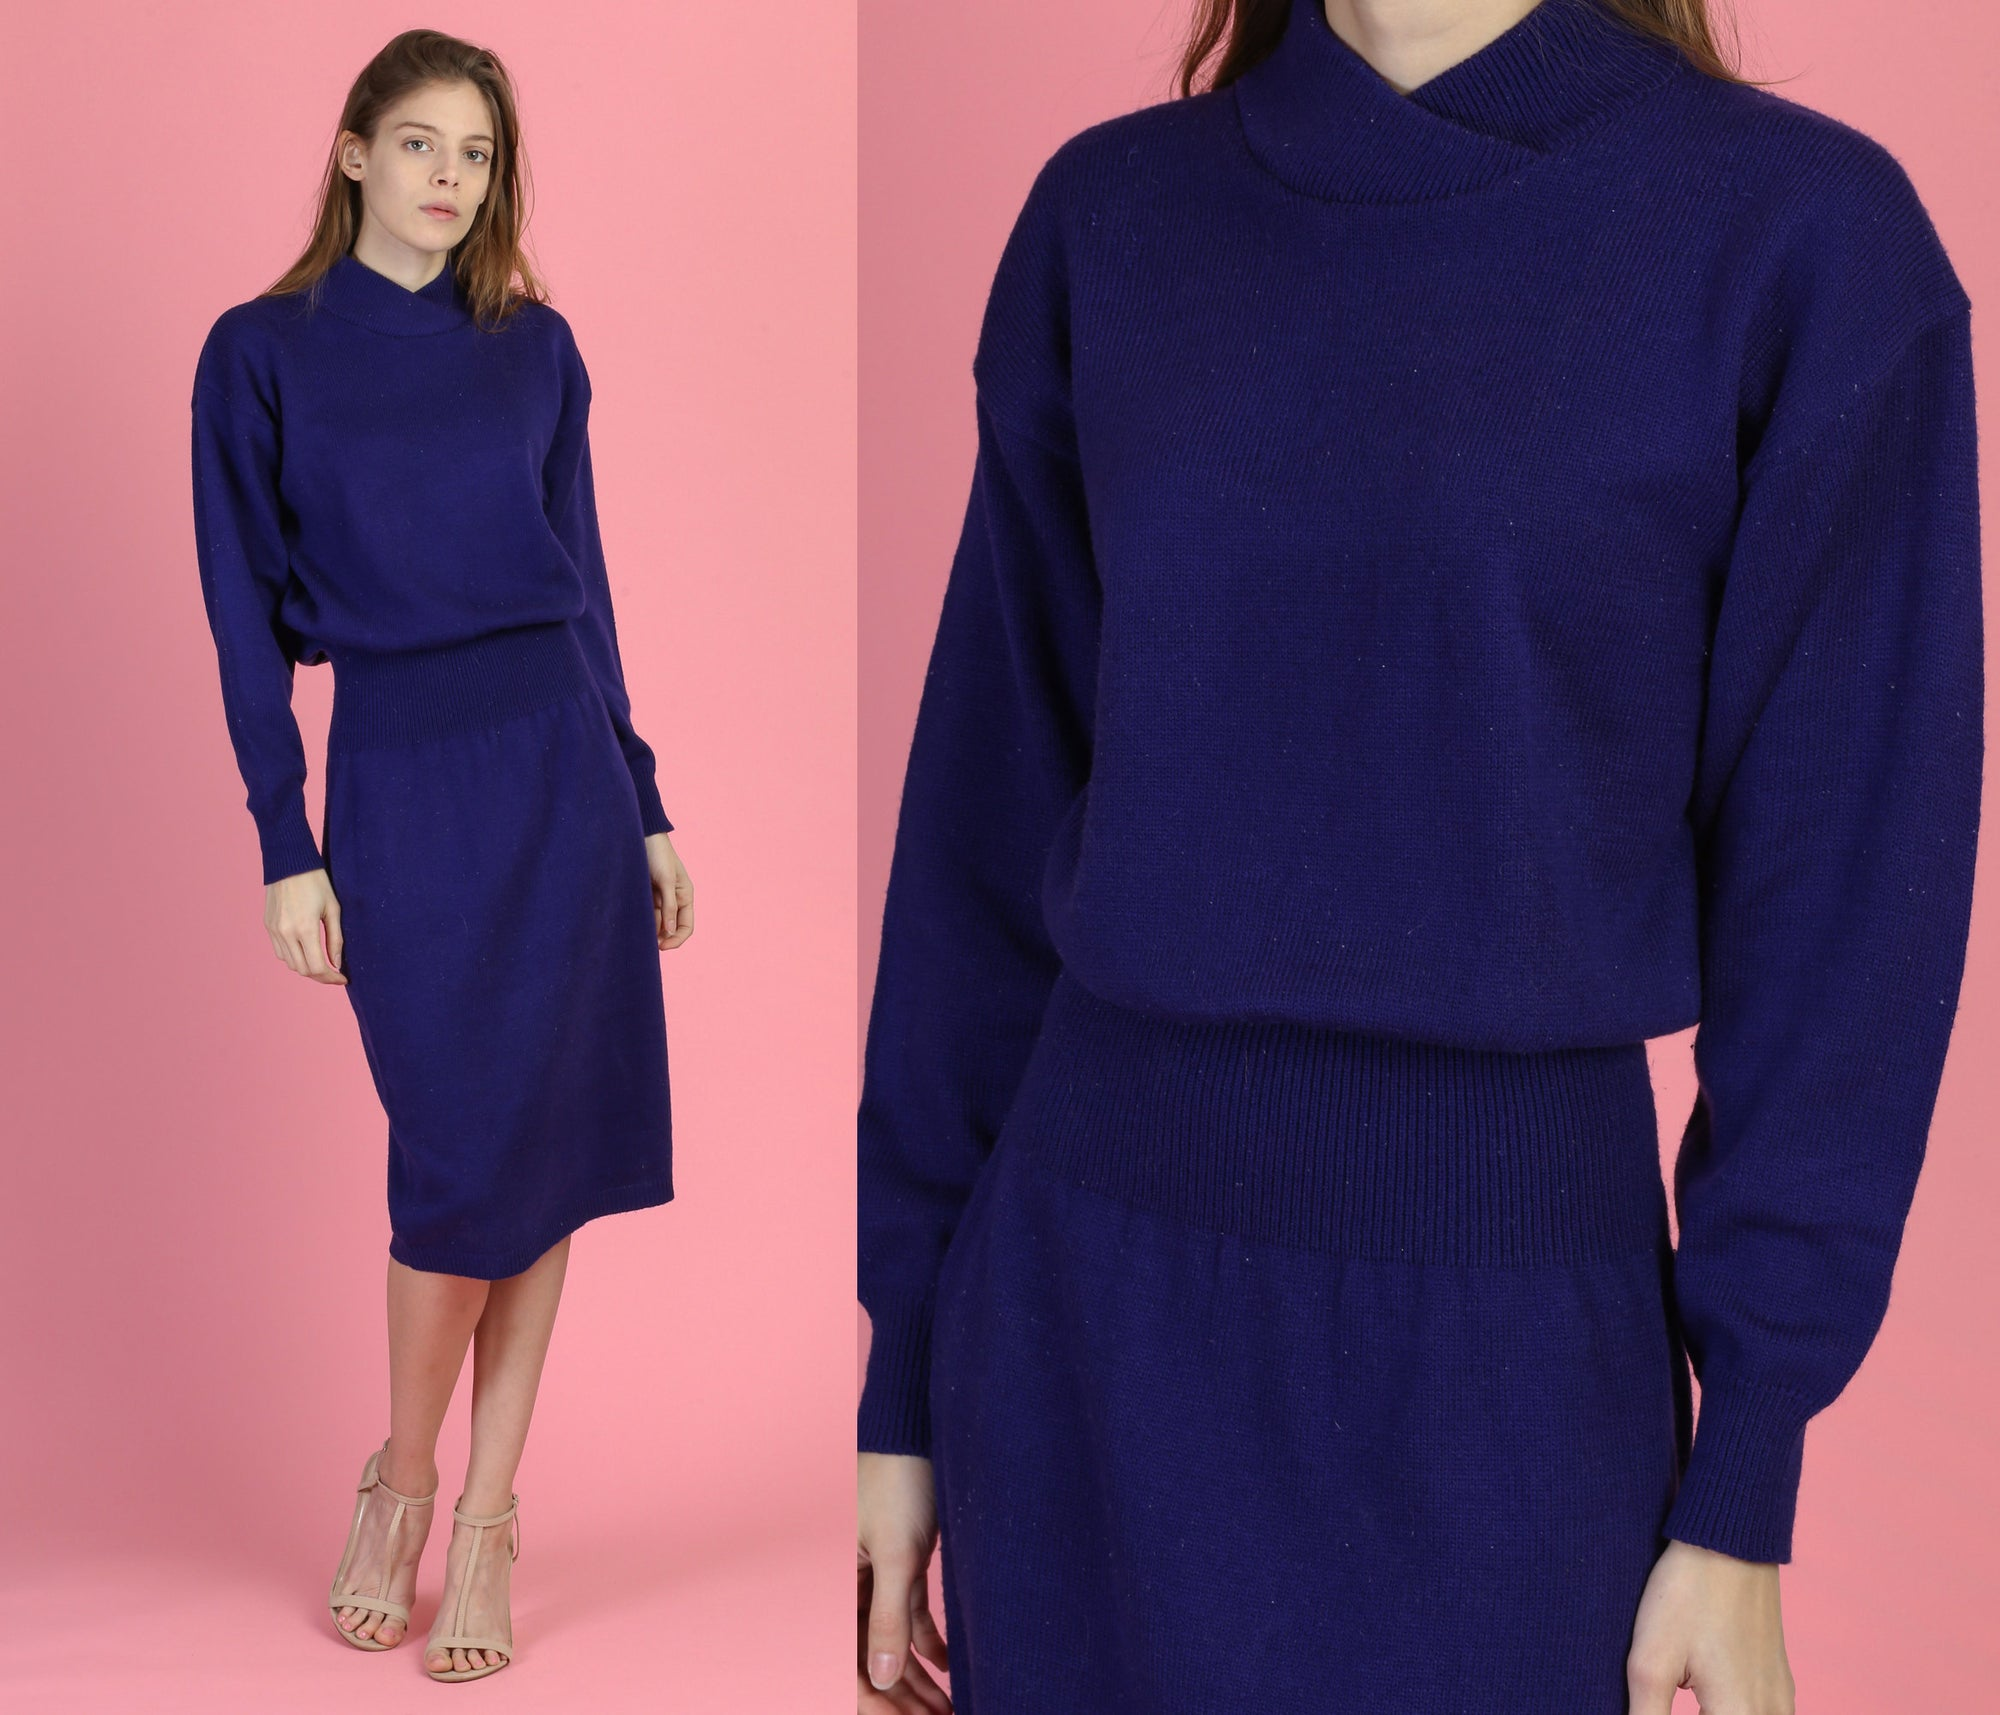 80s Minimalist Sweater Dress - Medium